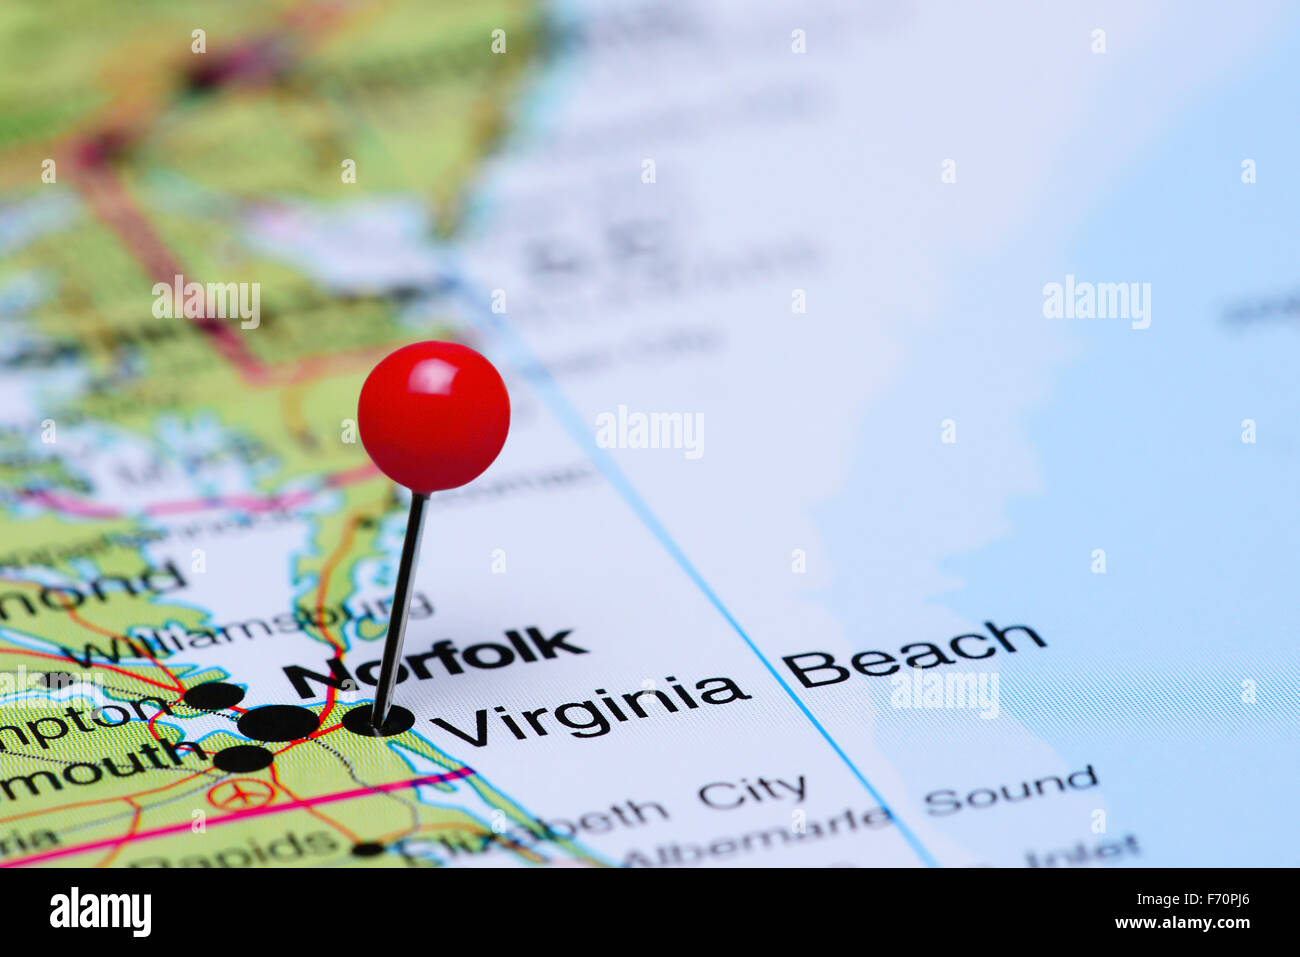 Virginia On A Map Of The Usa on usa california map, west virginia state map, new orleans on us map, virginia road map, new york city usa map,